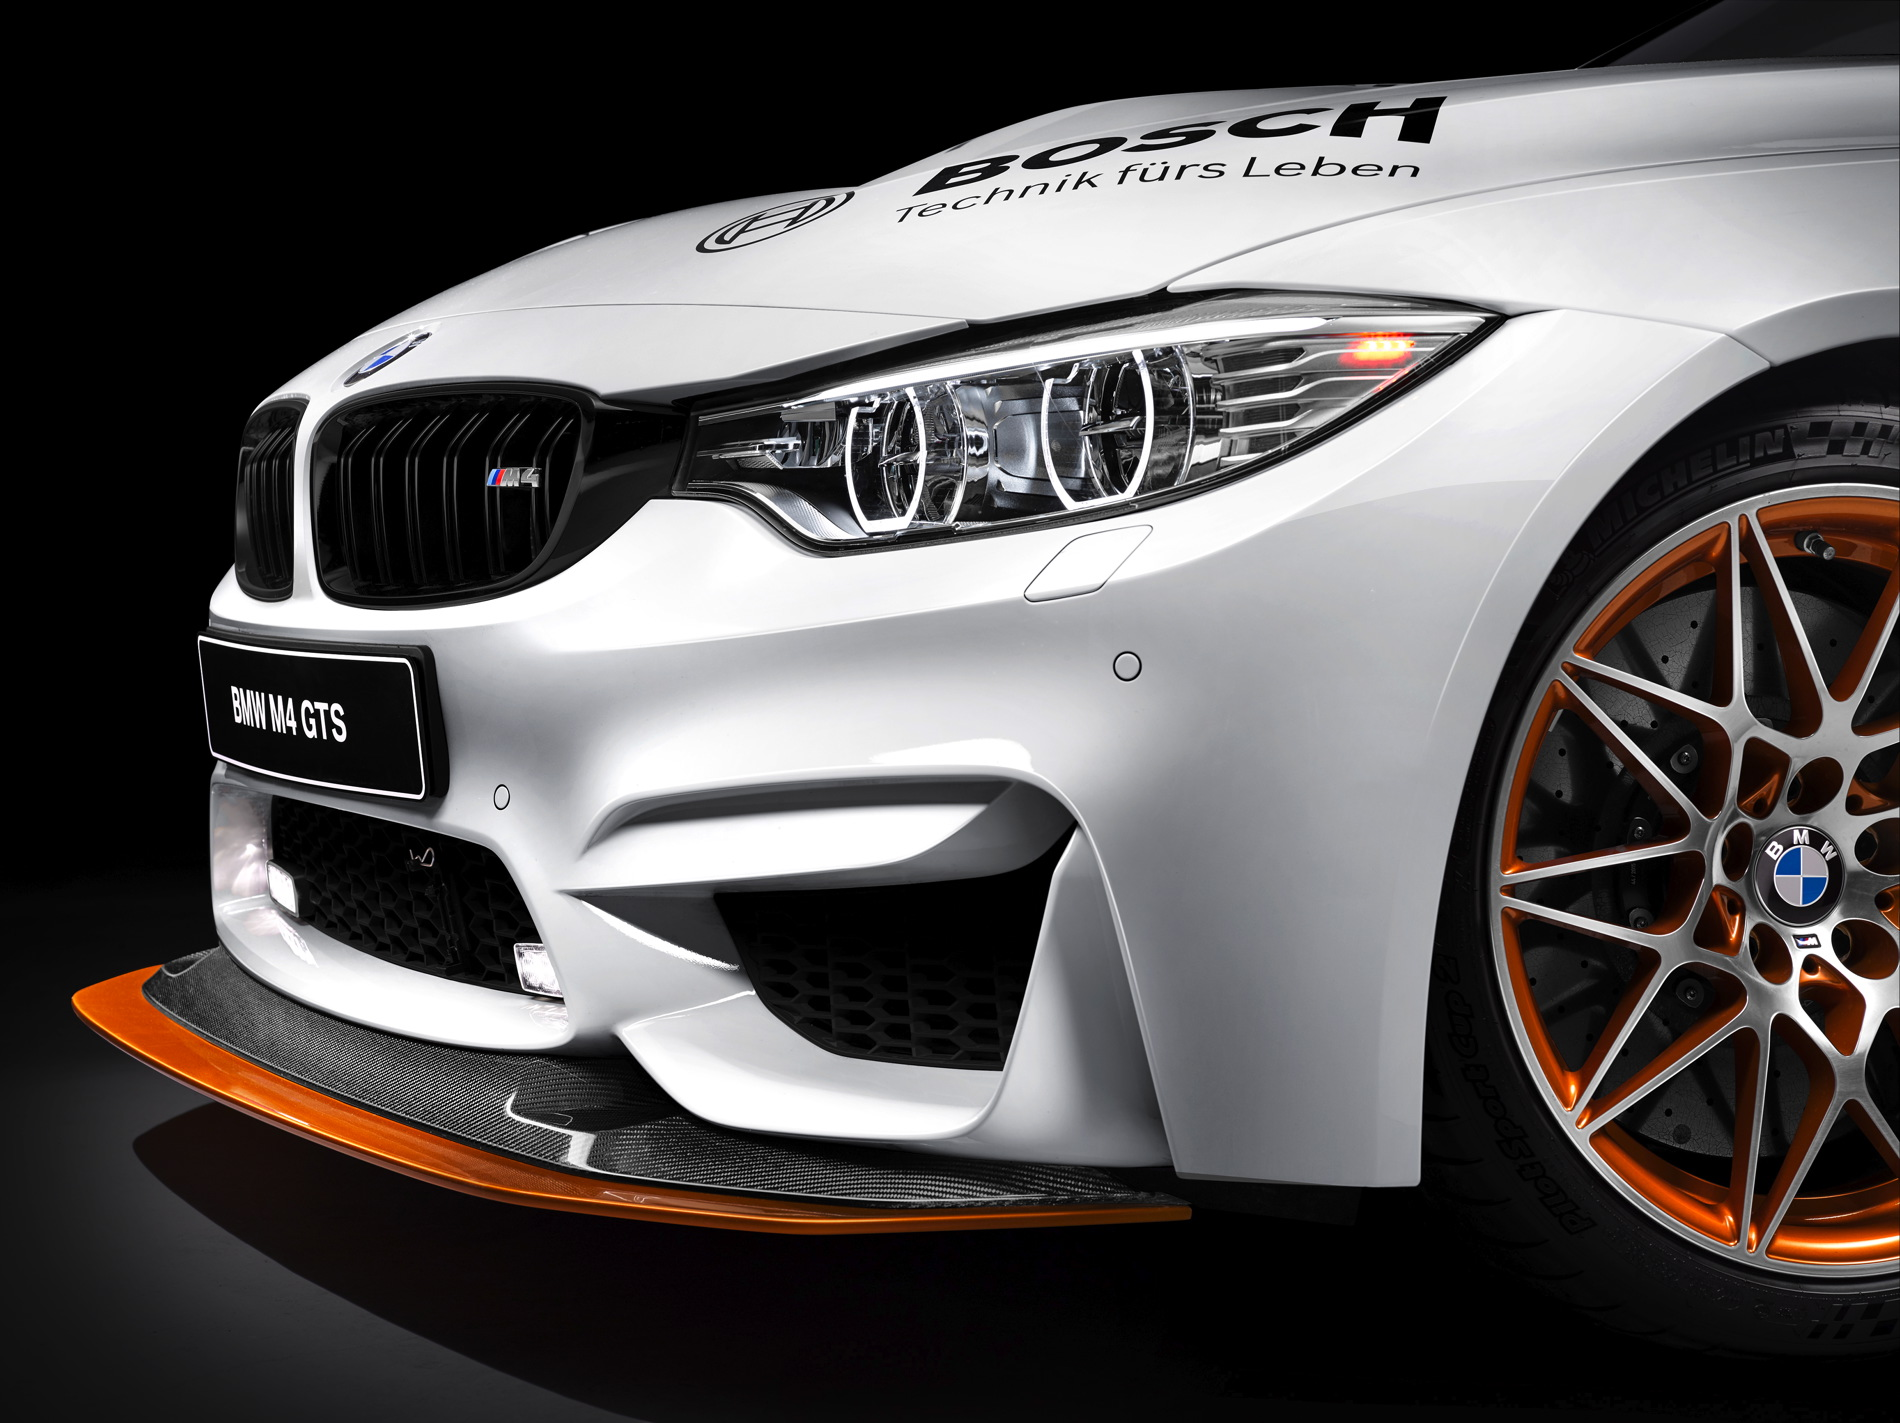 Bmw M4 Gts Is The Safety Car Of The 2016 Dtm Championship